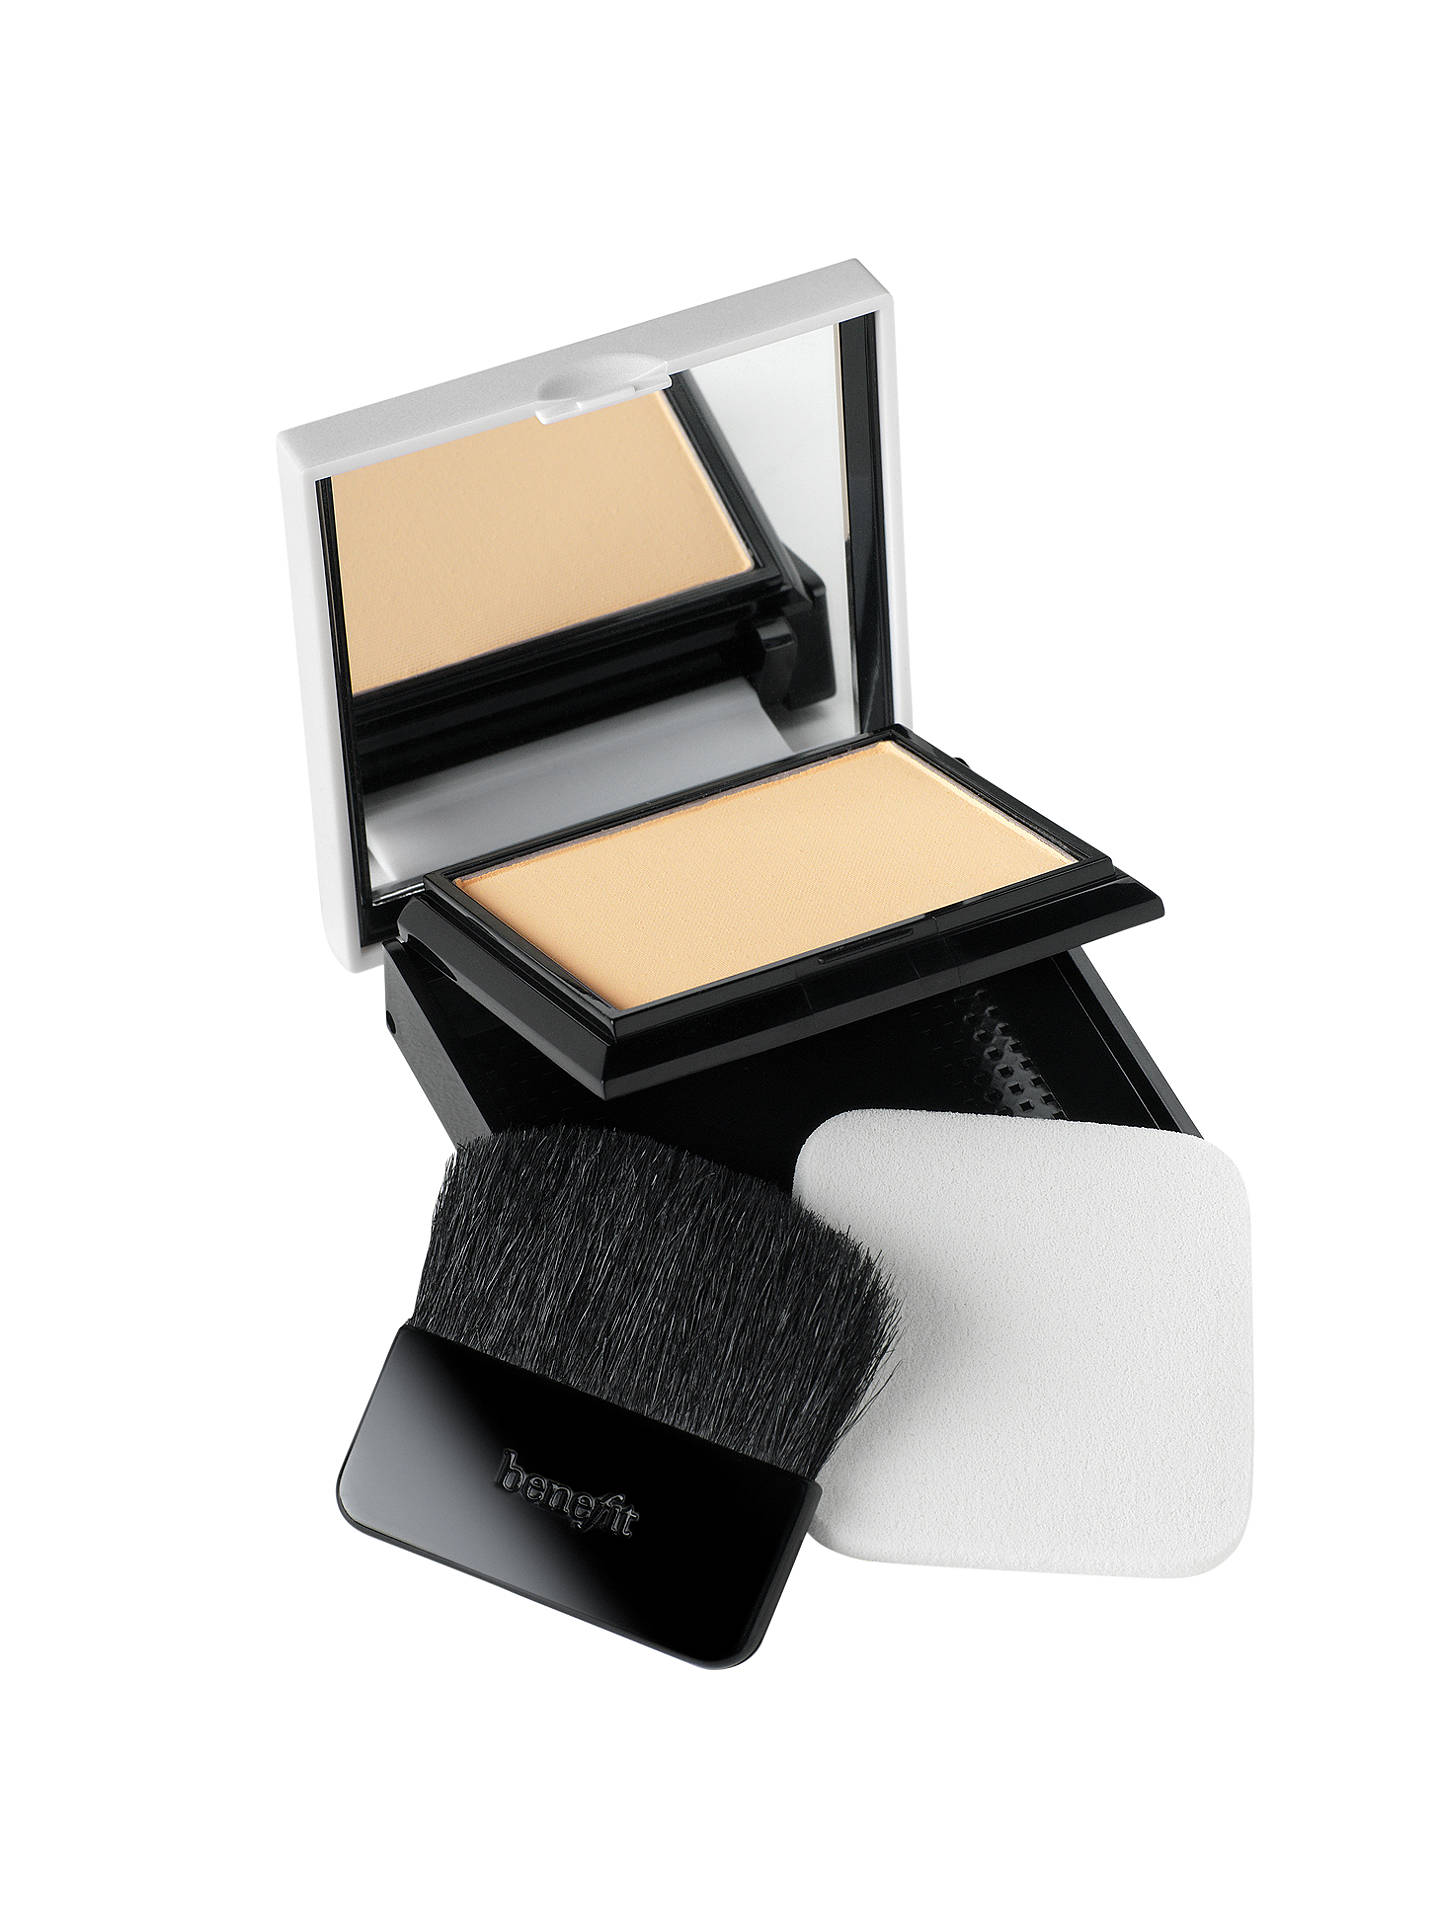 Benefit Hello Flawless Powder Foundation Spf15 At John Lewis Partners Eye Shadow Just Miss 223 Buybenefit What I Crave Online